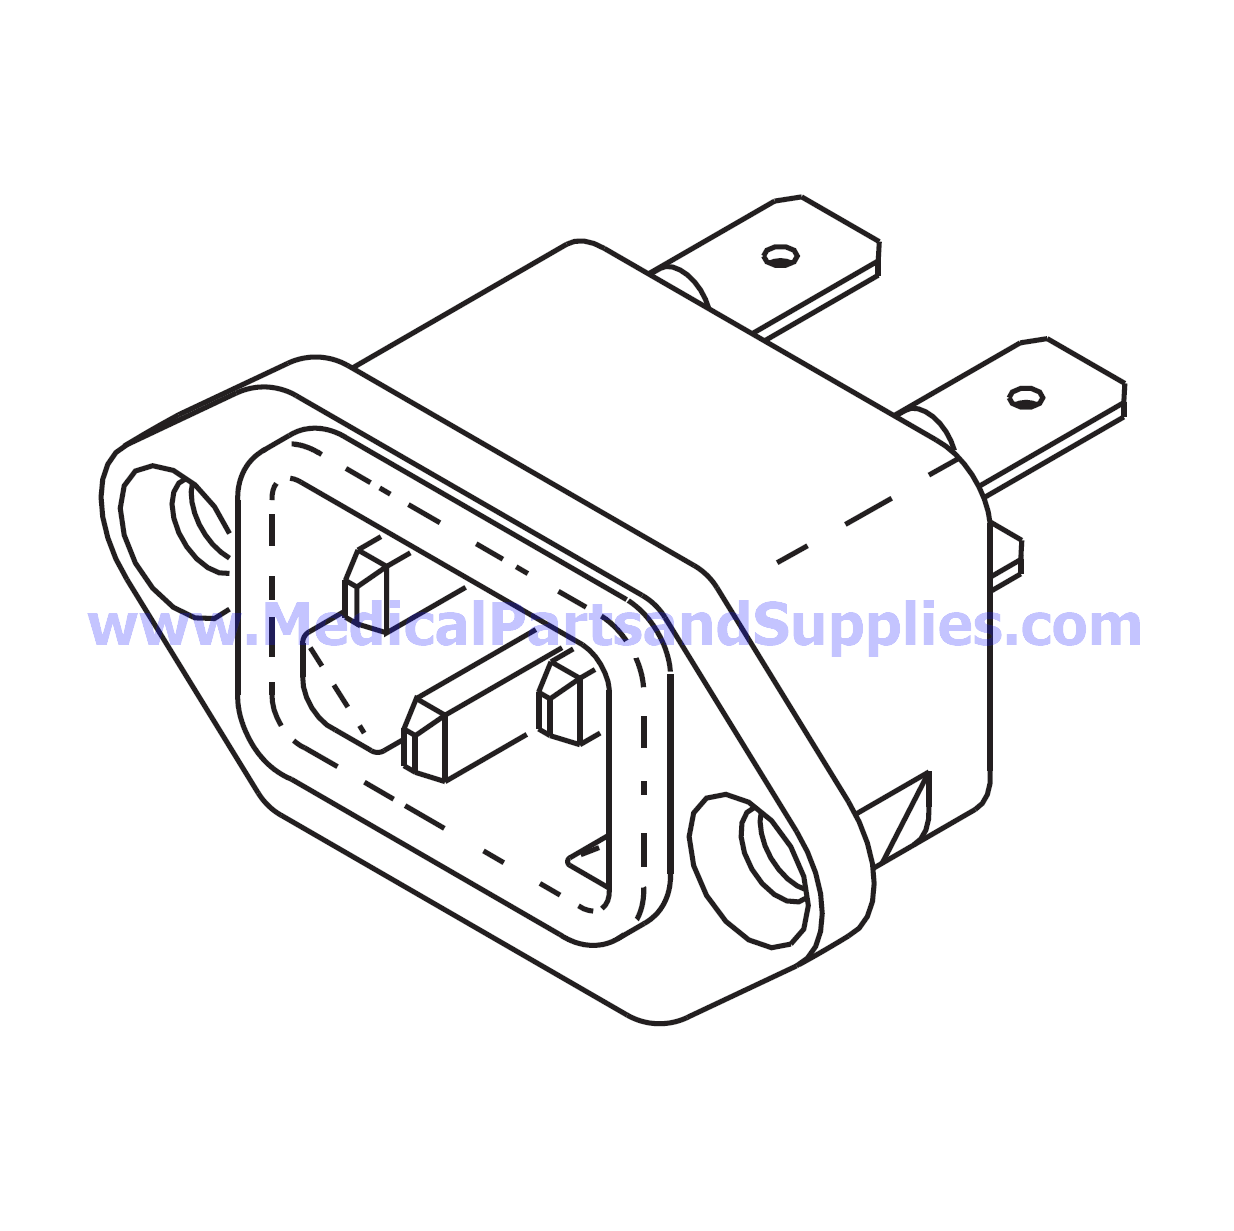 Ac Inlet Receptacle For The Tuttnauer Ez10 Part Rpr583 Oem Part